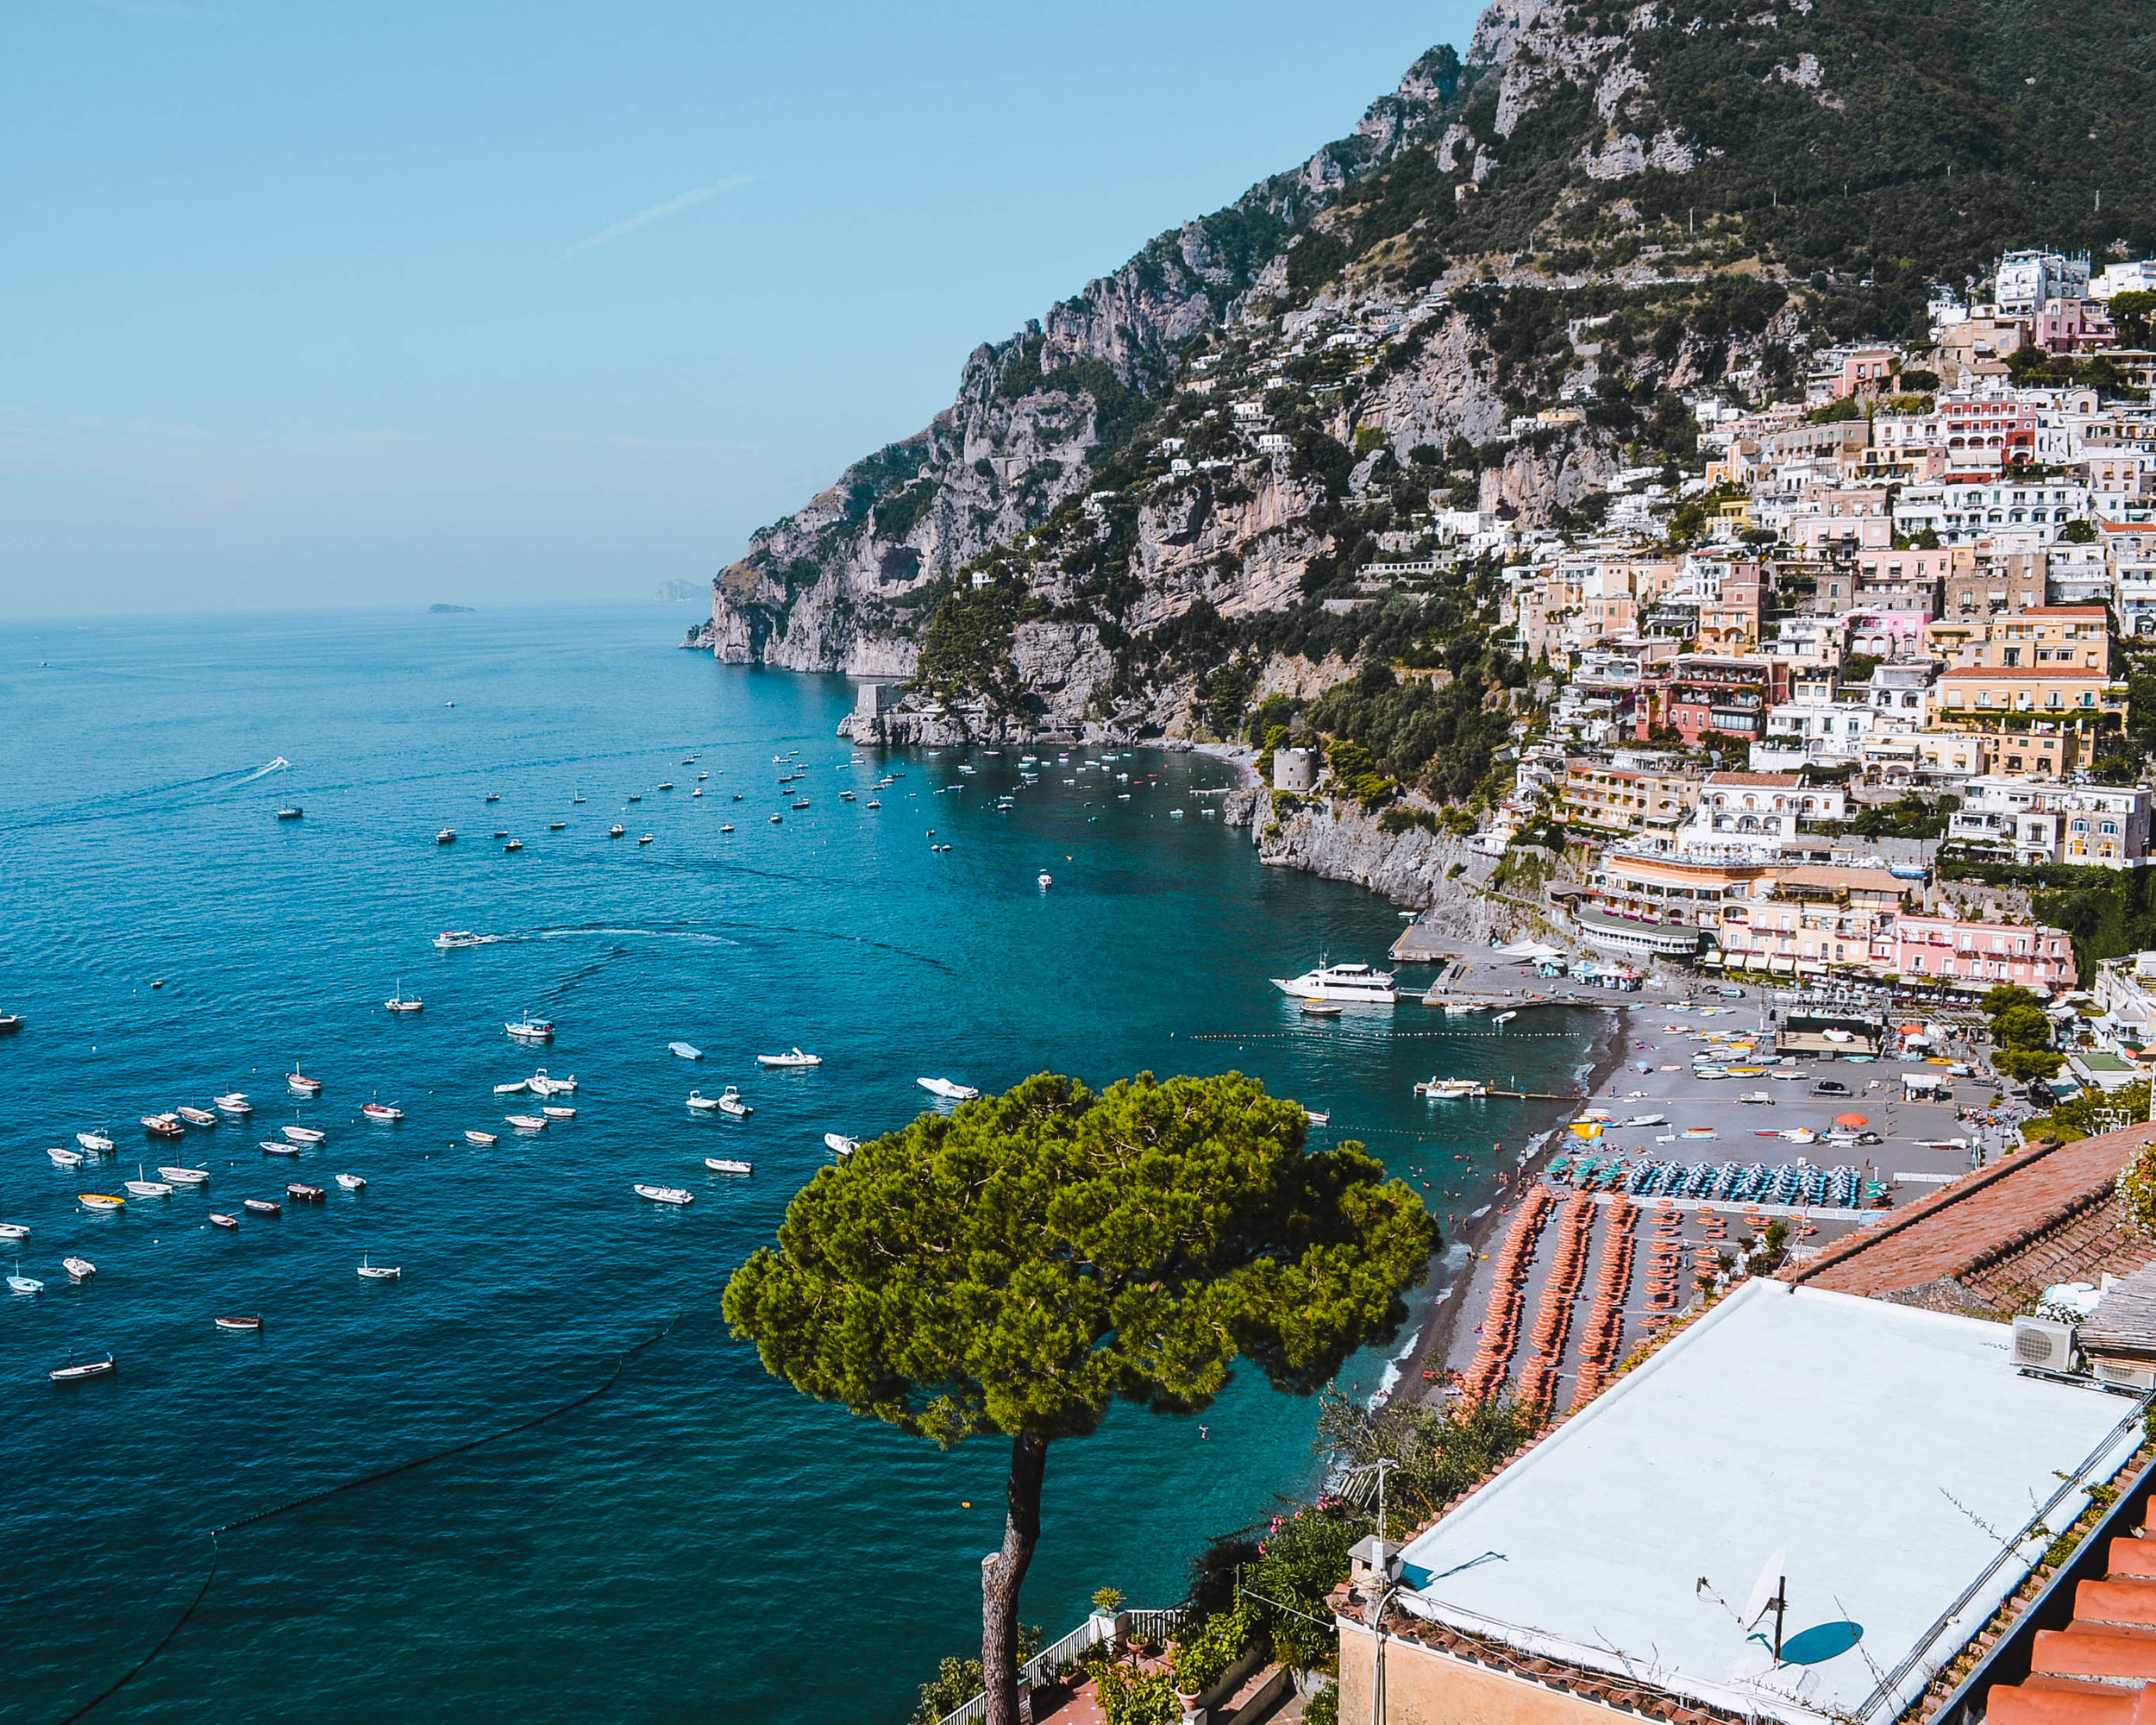 ITALY TRAVEL GUIDE - The Ultimate Guide for traveling Italy, arguably one of the most beautiful places in the world with much to offer any curious traveler!